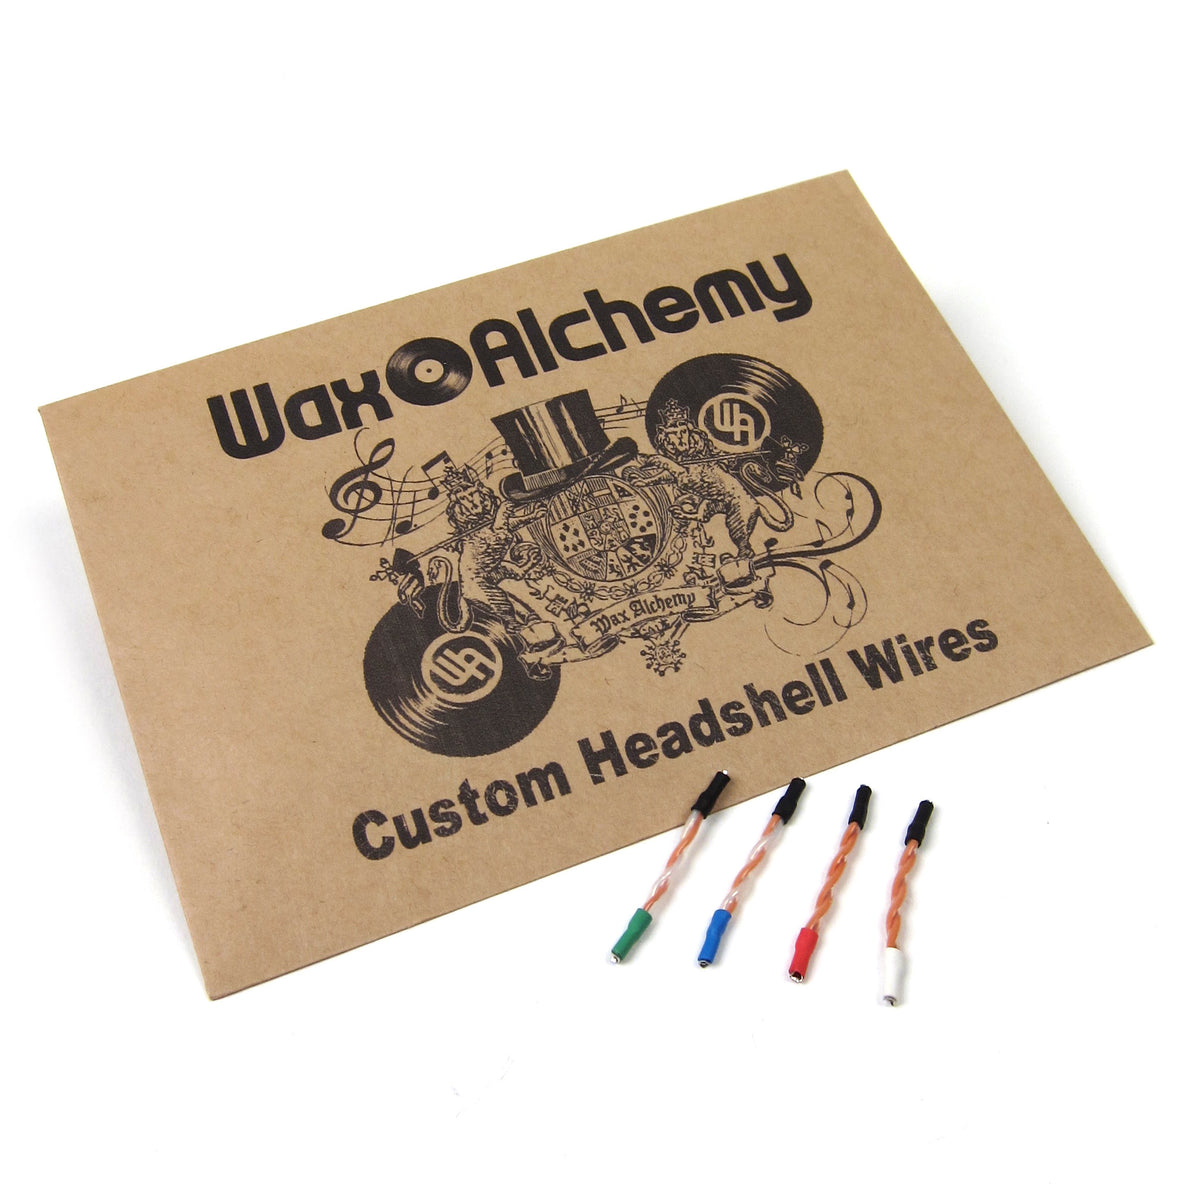 Wax Alchemy: Custom Japanese Headshell Wires